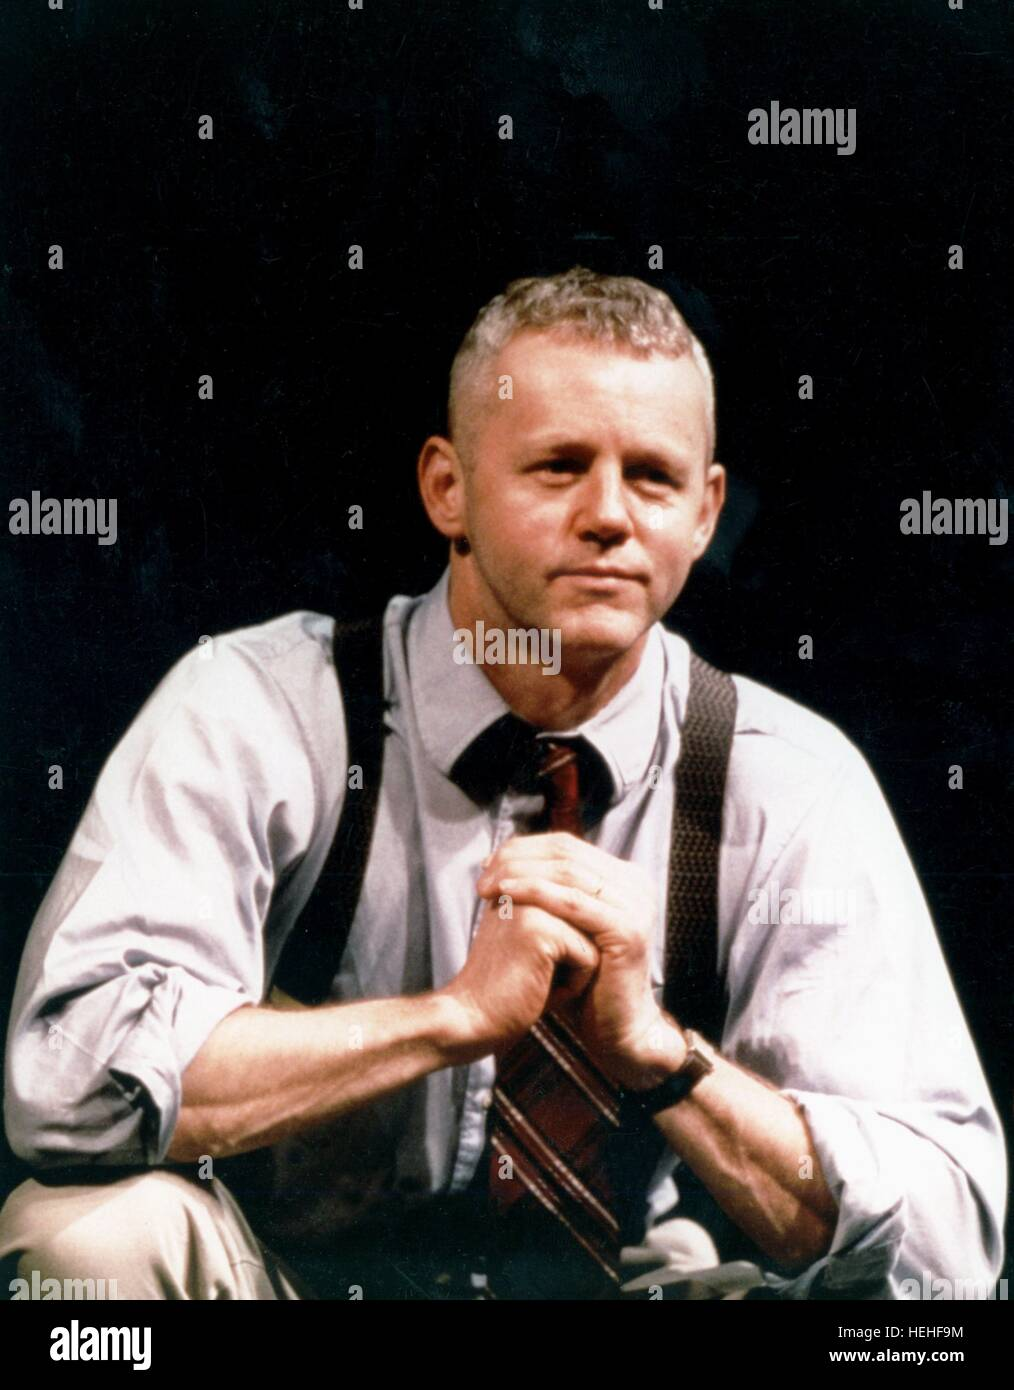 DAVID MORSE ACTOR (1999) Stock Photo